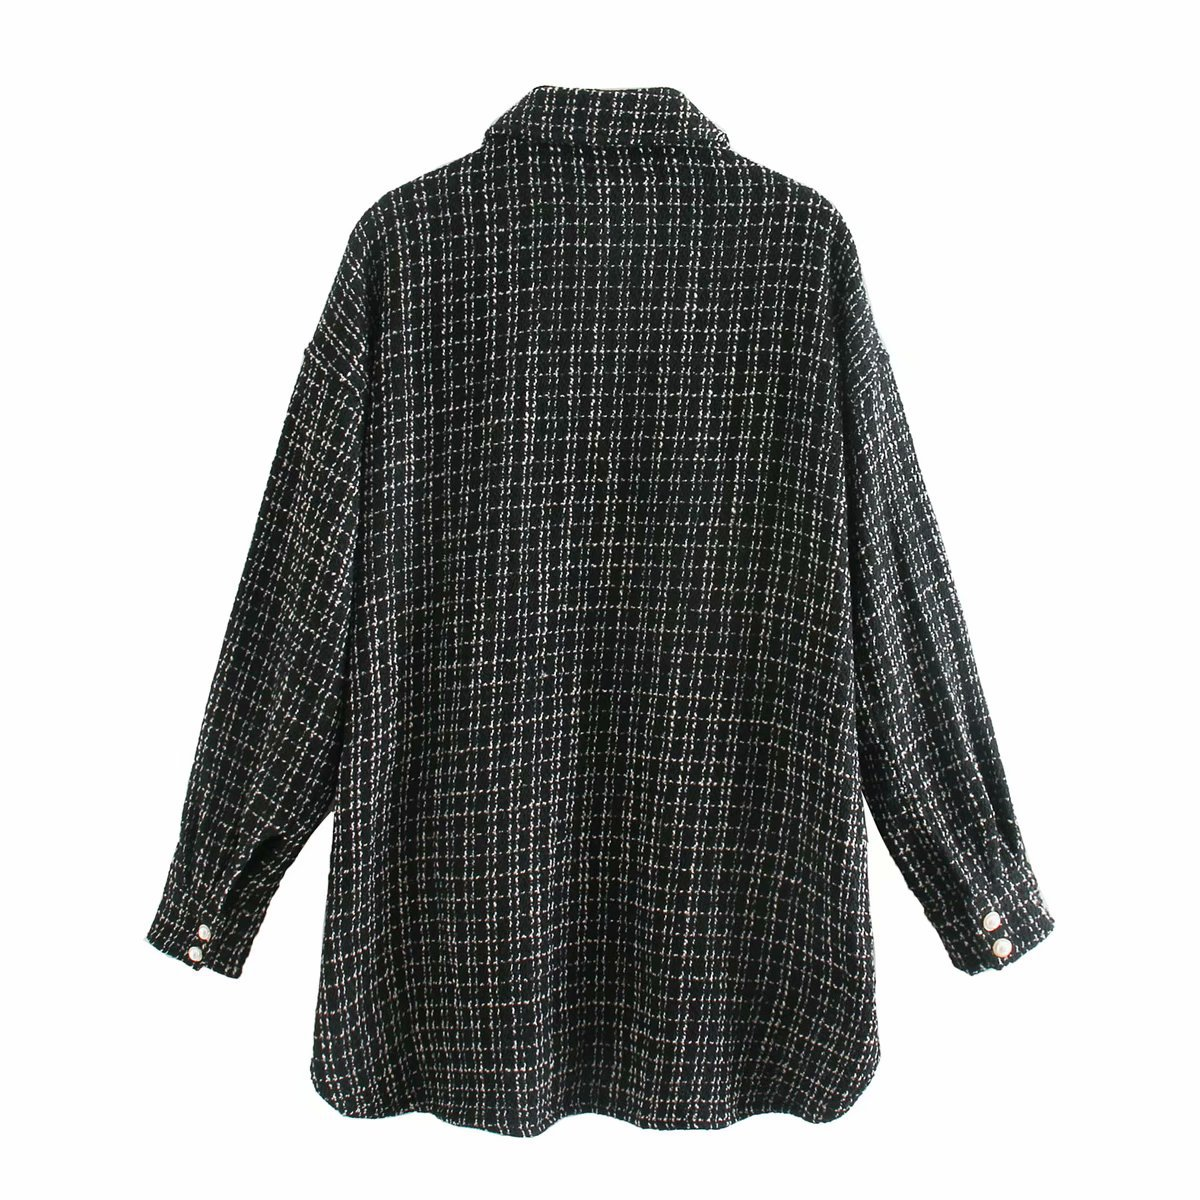 wholesale autumn two-color small fragrance style women's shirt jacket NSAM4212